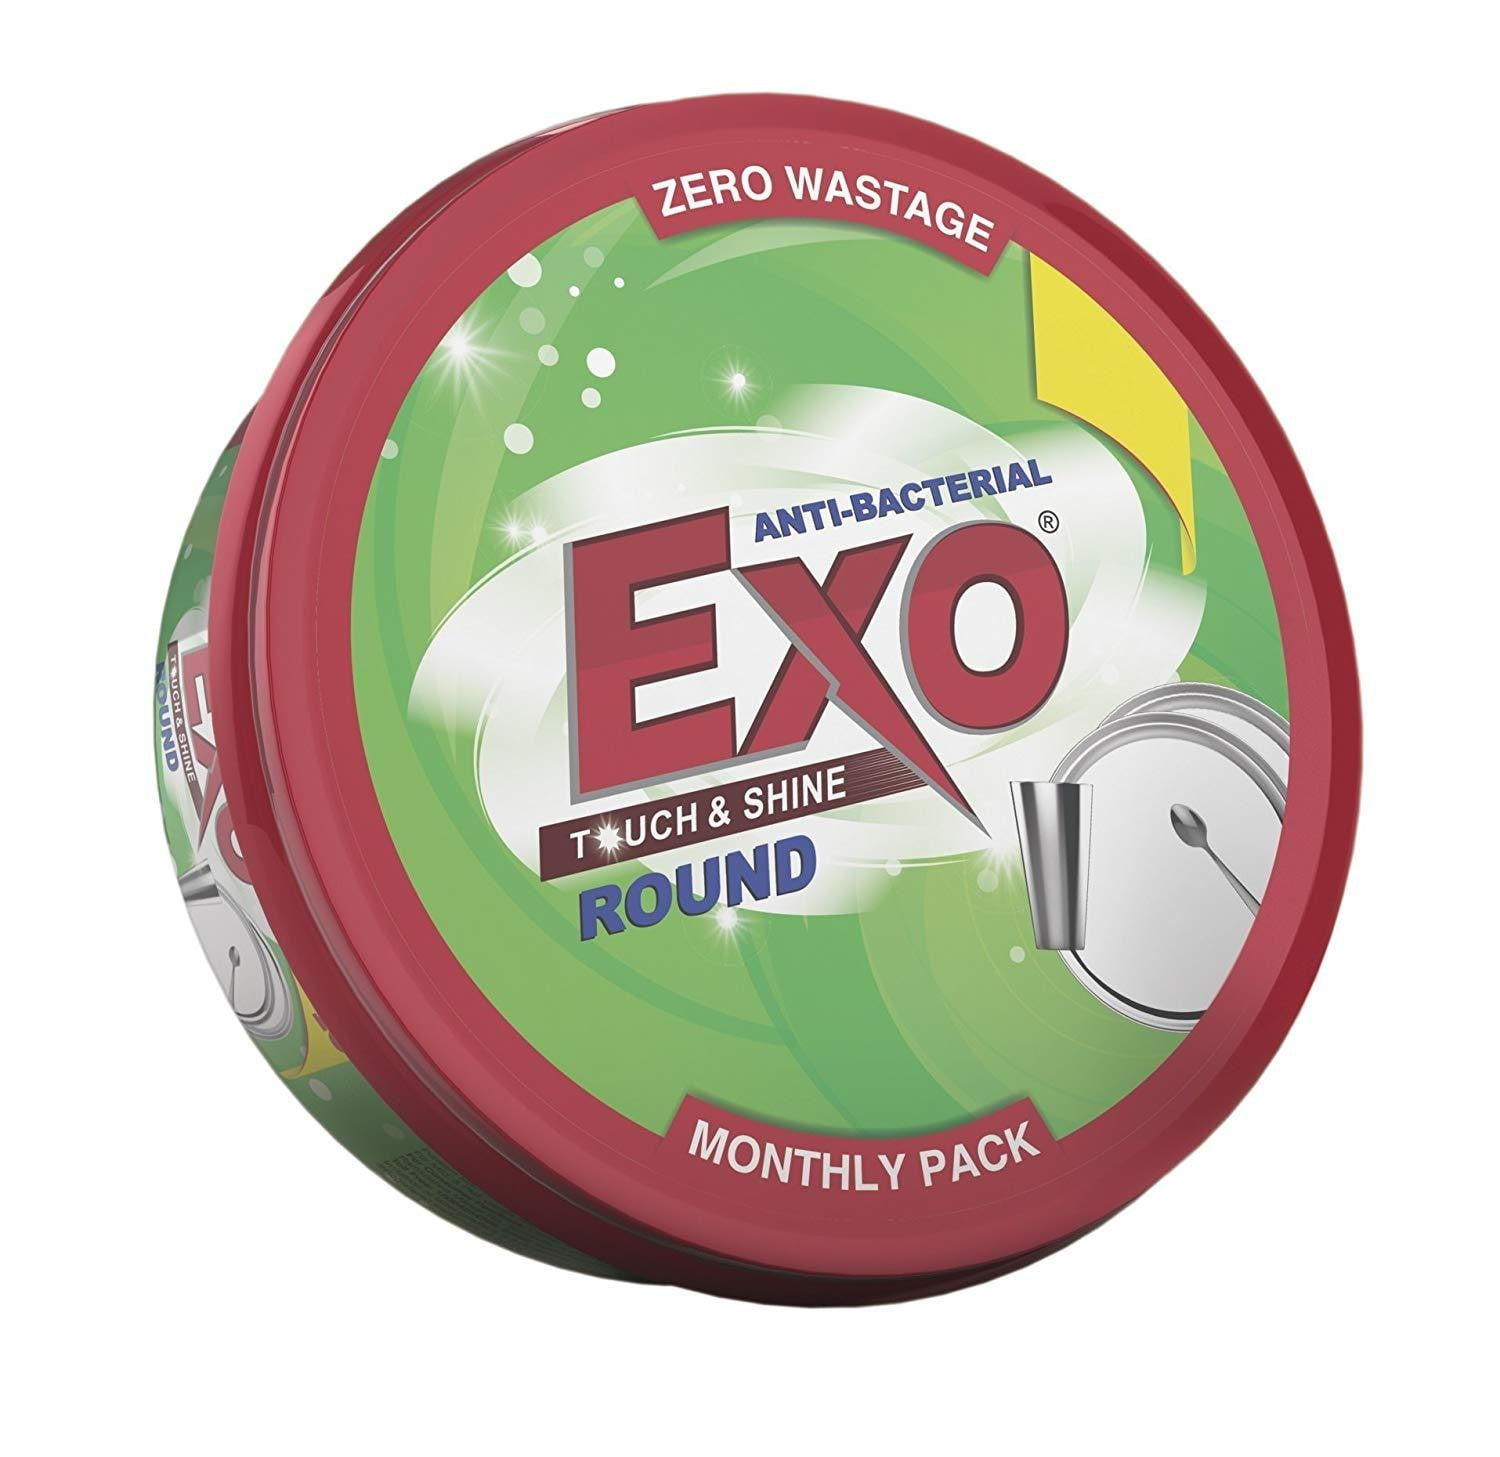 Exo Round Dish Shine 250 gm get best offers deals free and coupons online at buythevalue.in